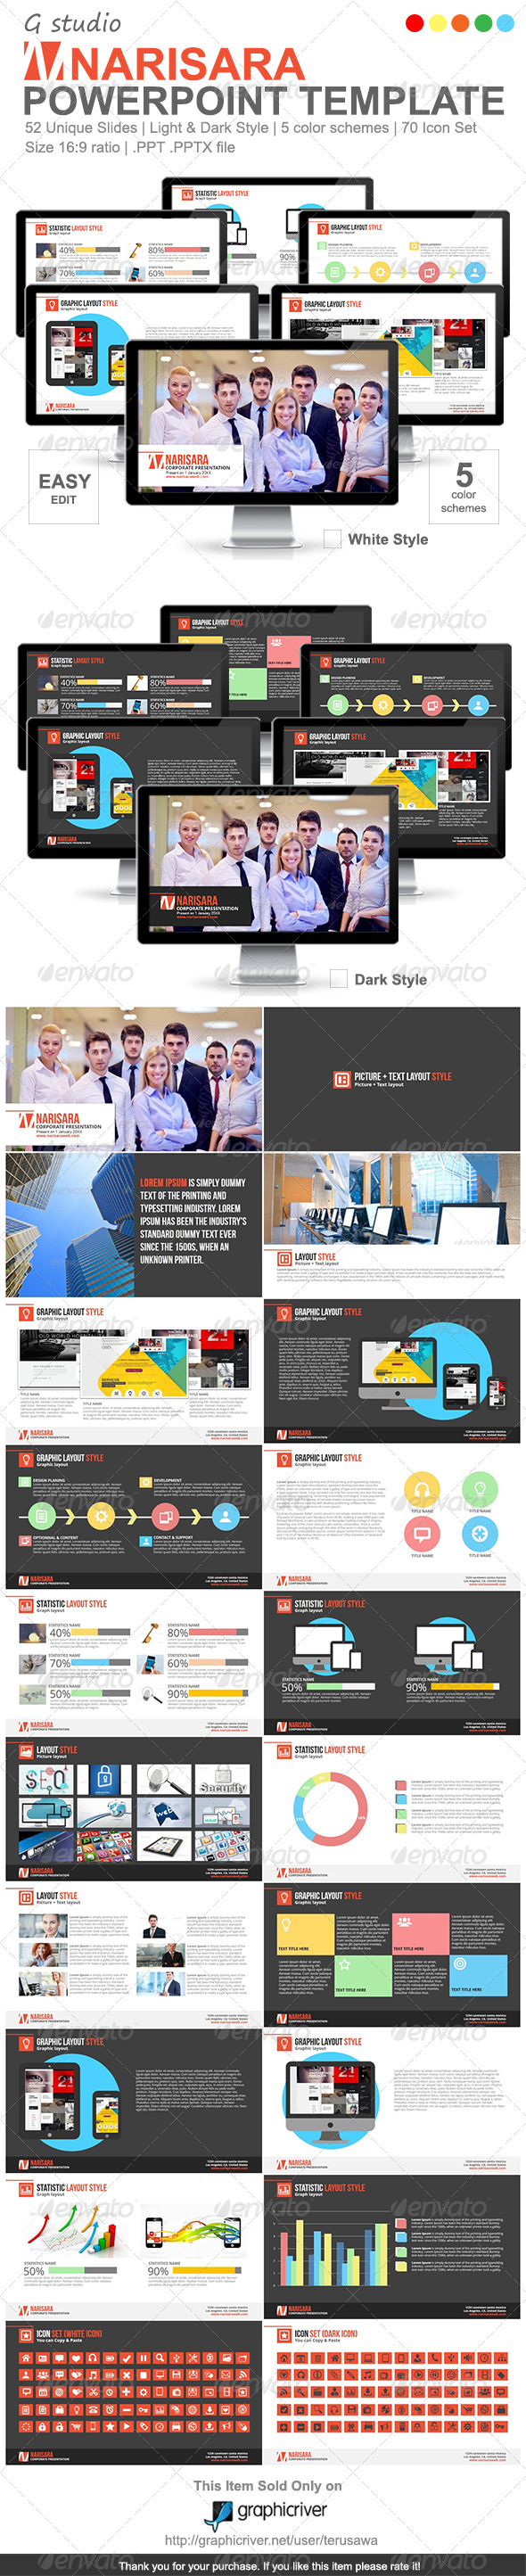 GraphicRiver Gstudio Narisara Powerpoint Template 6895201